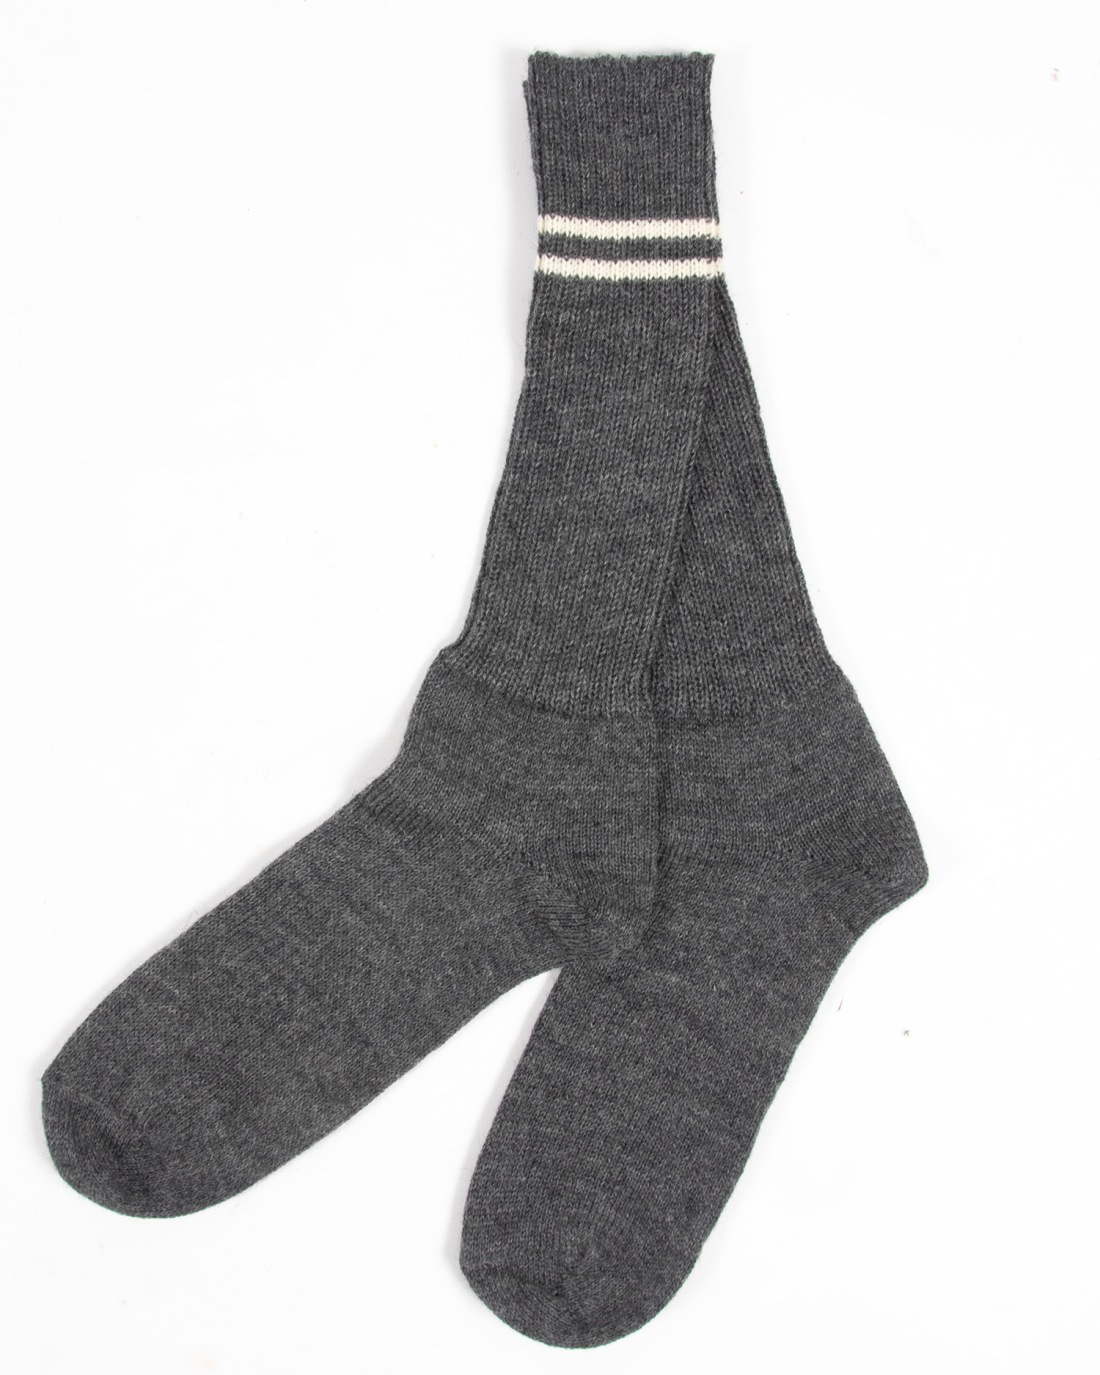 german-socks